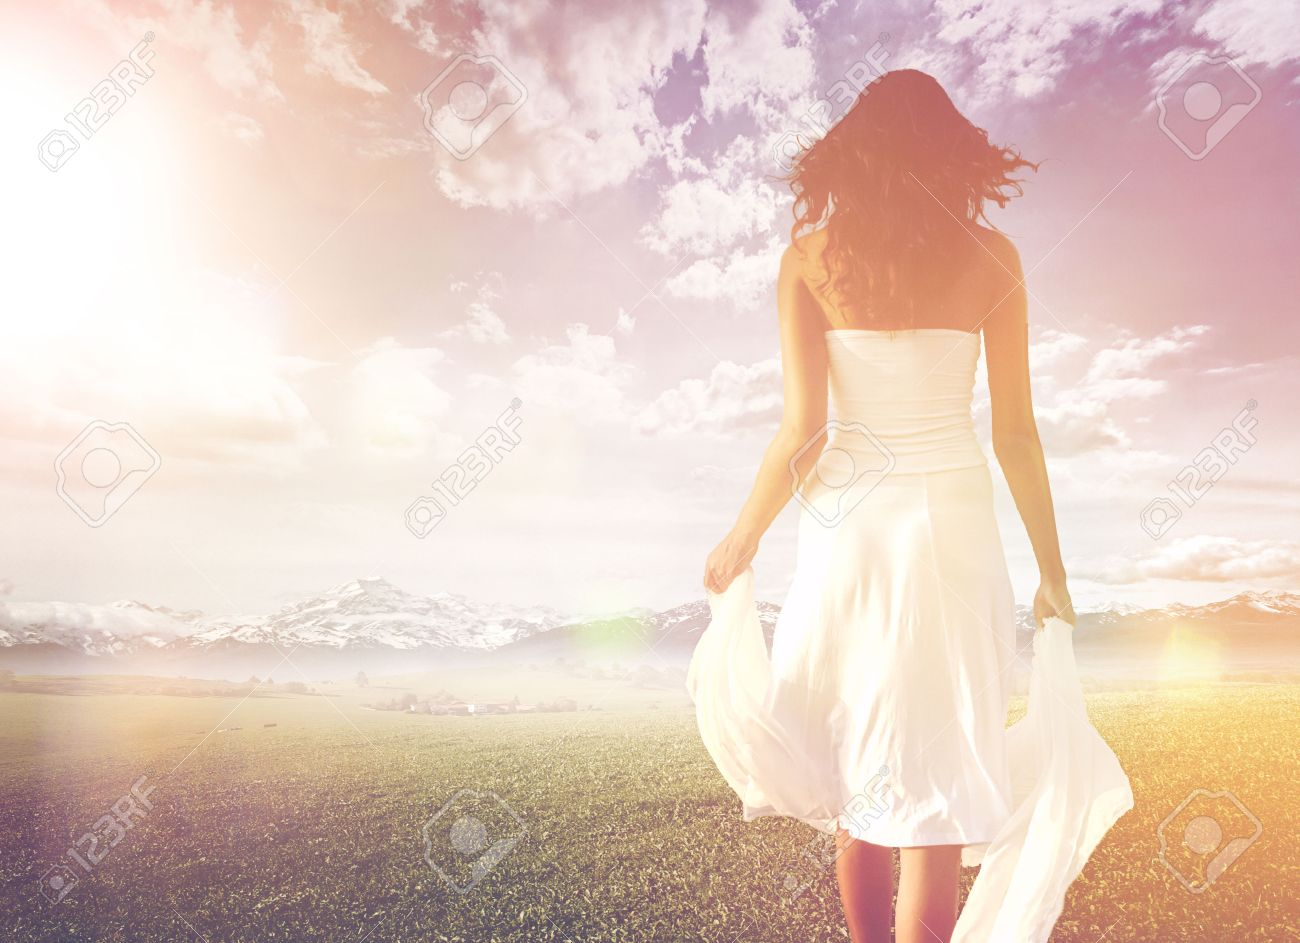 Slender long-haired woman wearing white summer dress while walking on a green meadow towards a bright and sunny horizon, under a dramatic sky, shot from behind, in high-key - 30007583